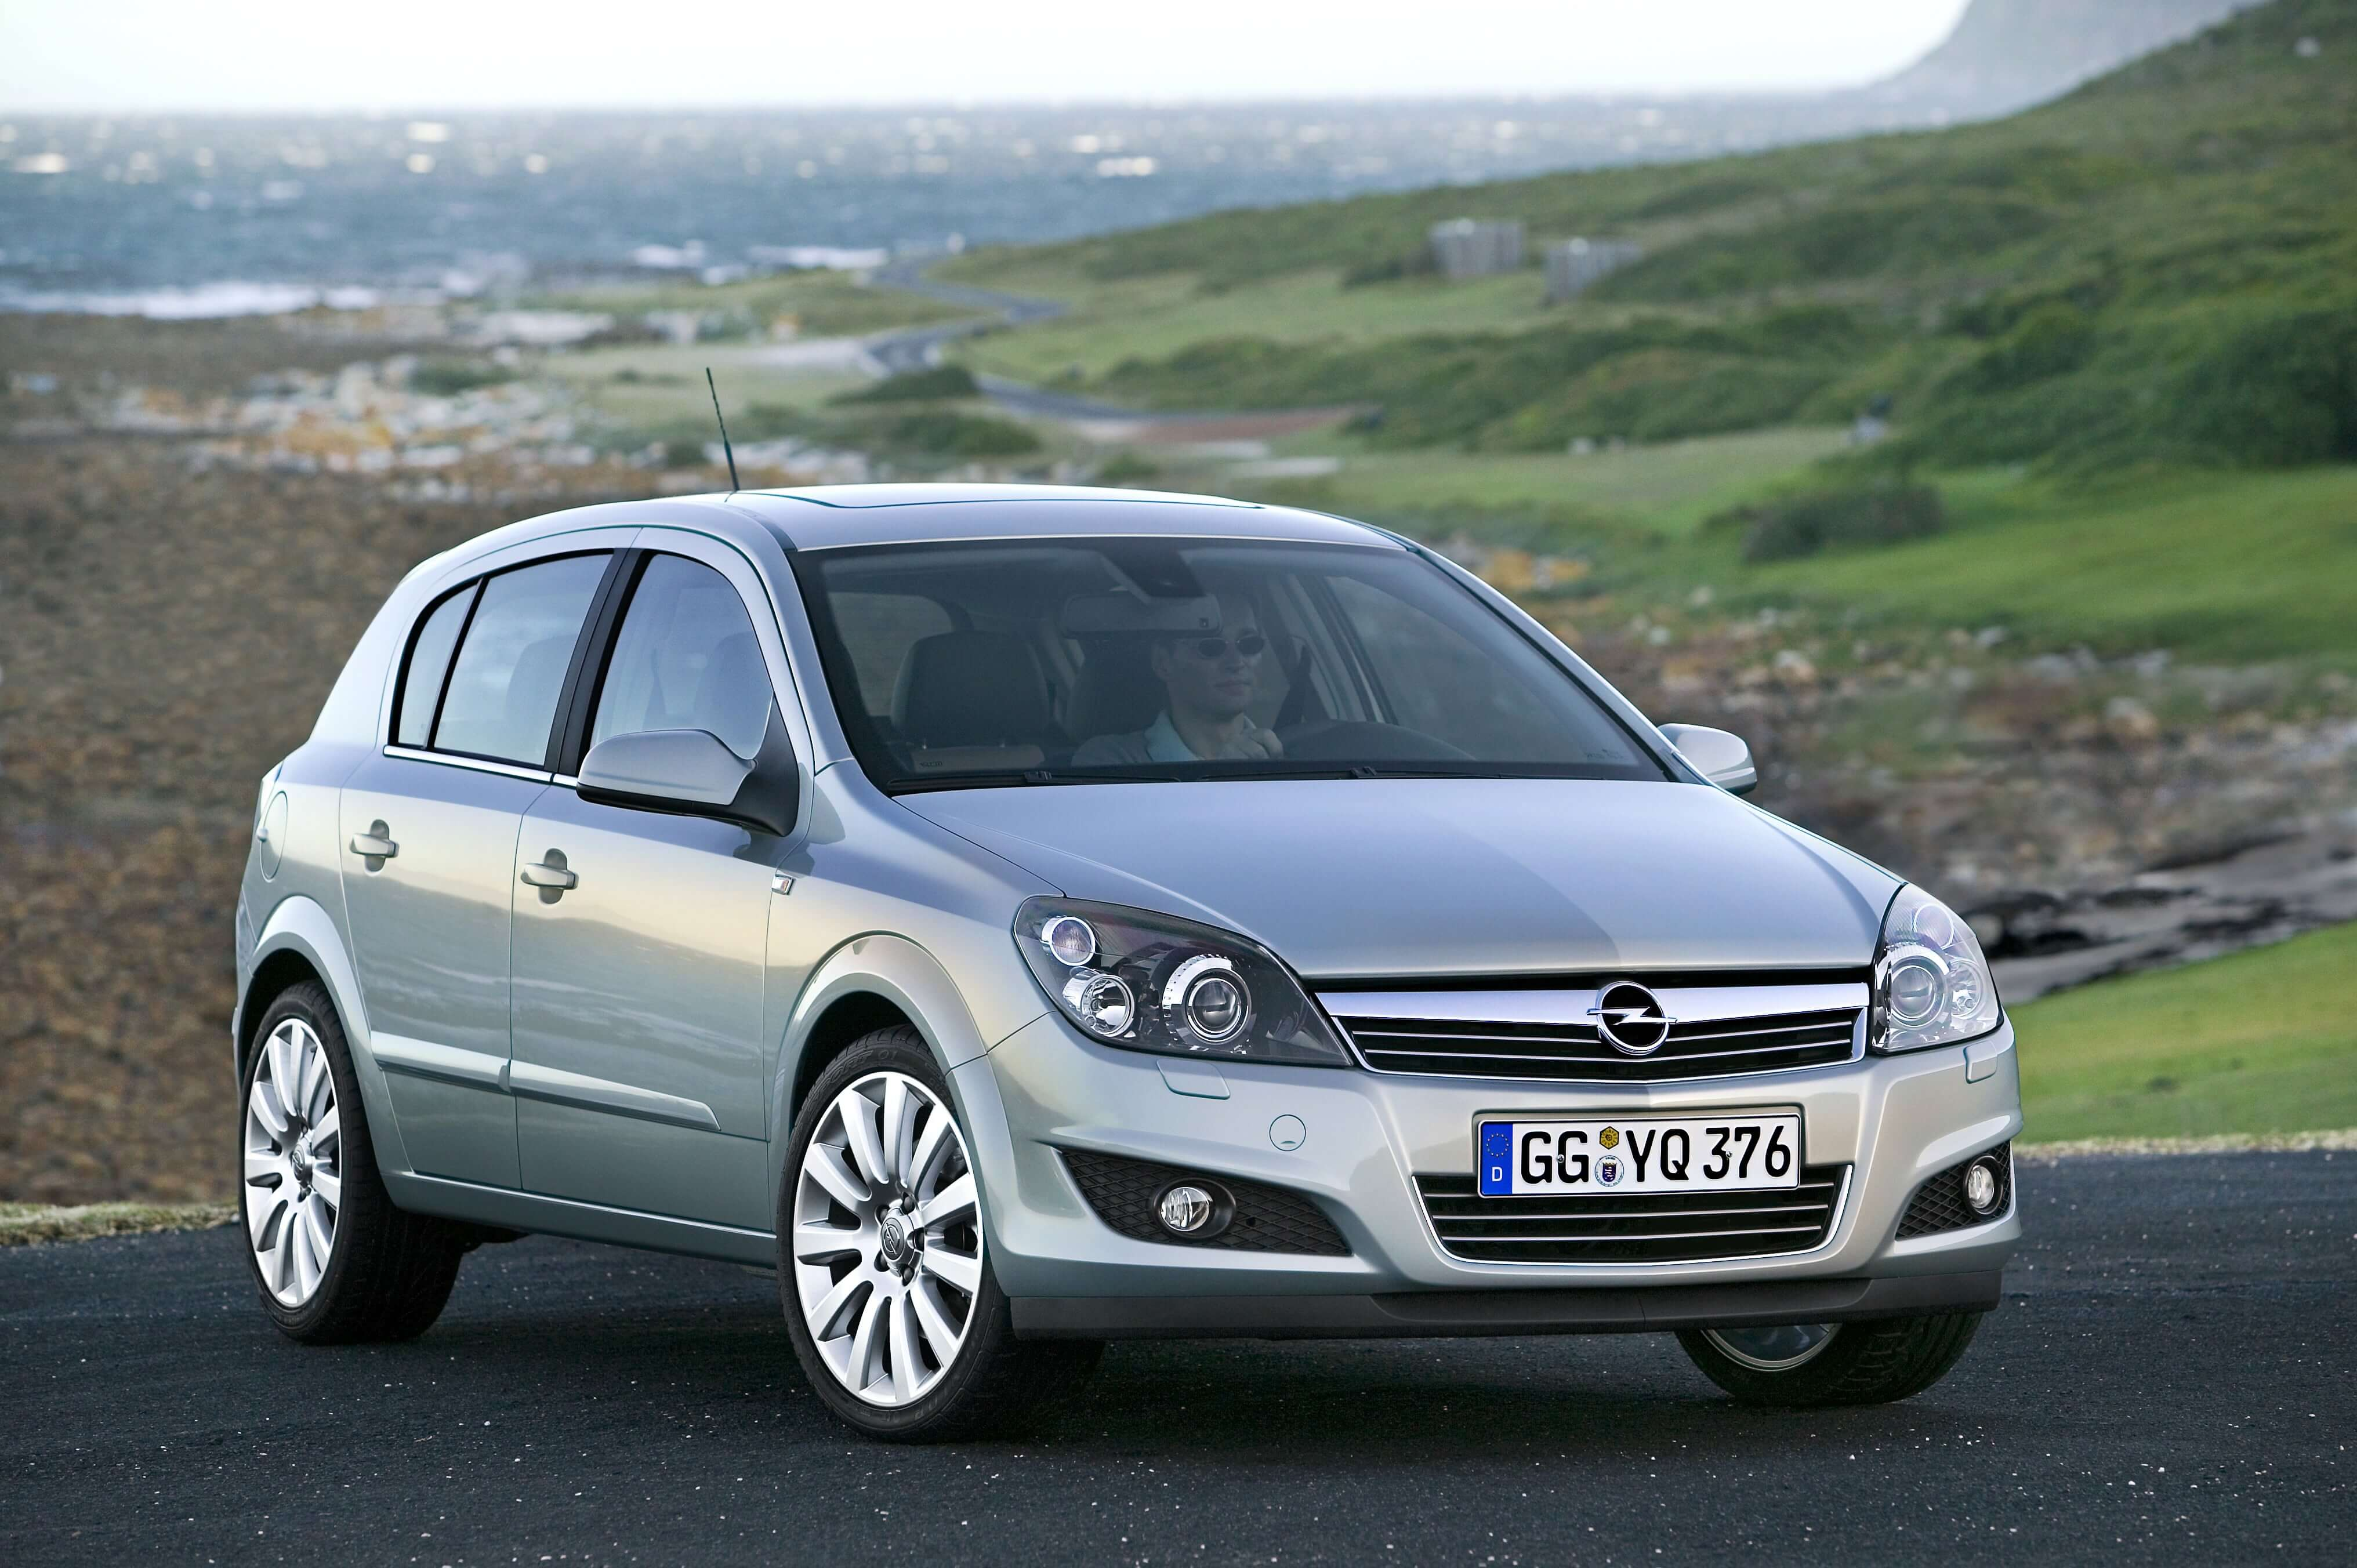 Opel Astra 2004 - 2010 | Carzone Used Car Buying Guides